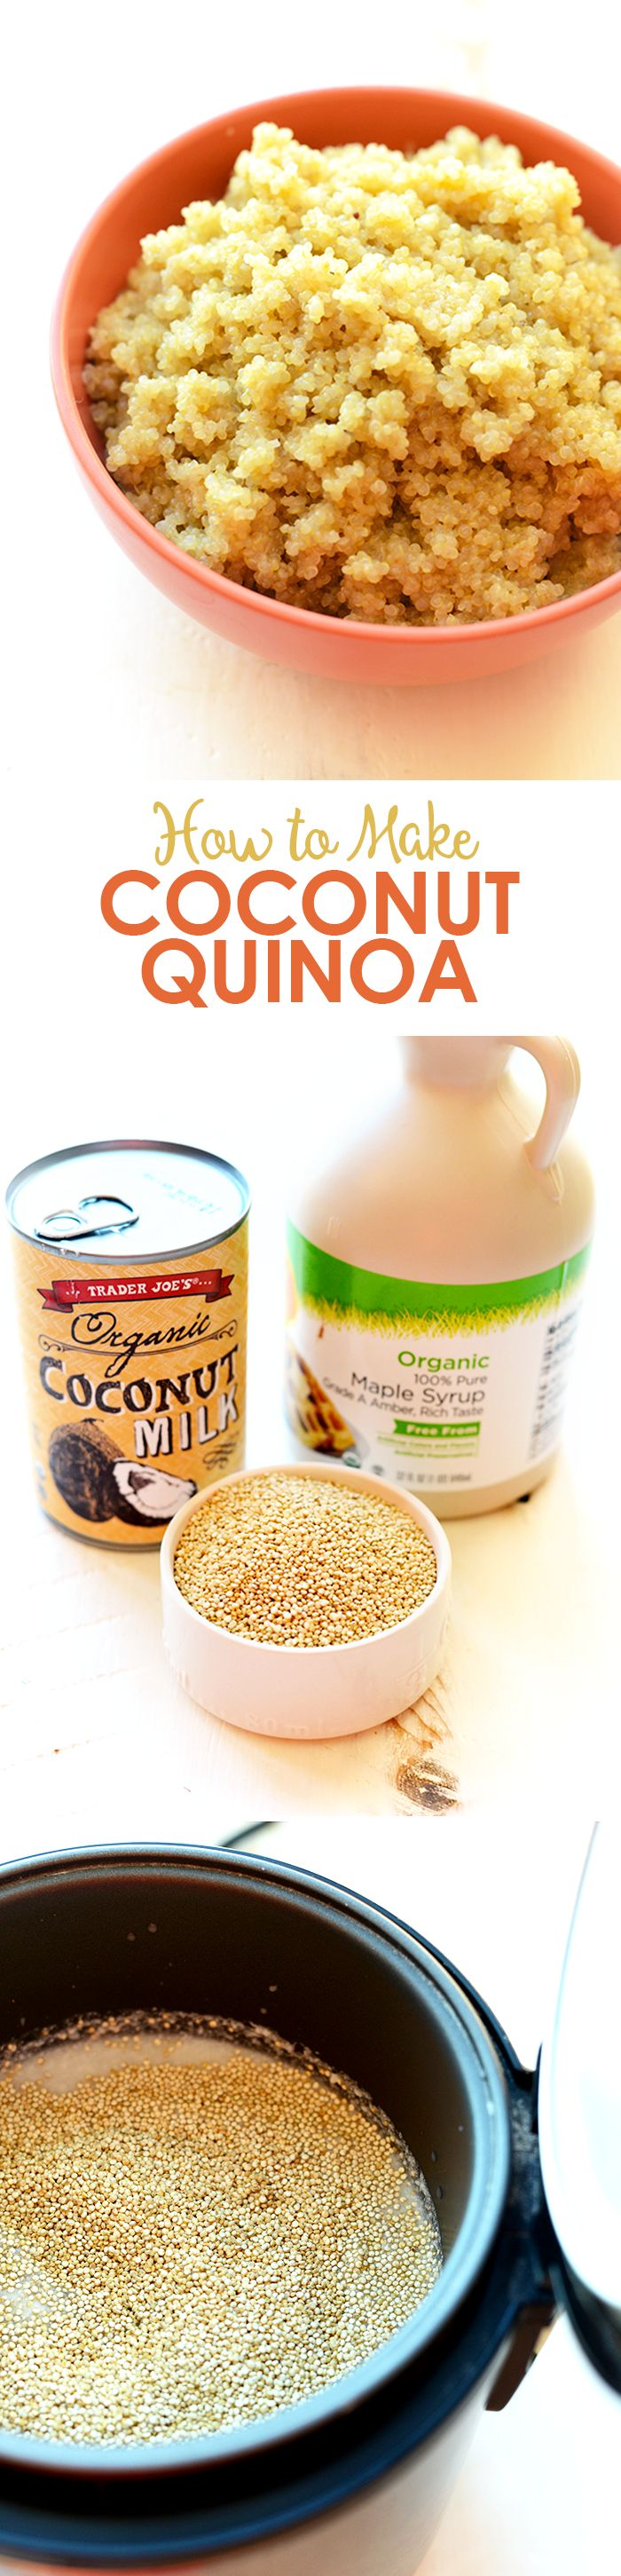 Make this delicious coconut quinoa with just 3 simple ingredients! It's like your classic coconut rice, but made with a complete protein and so much more love!